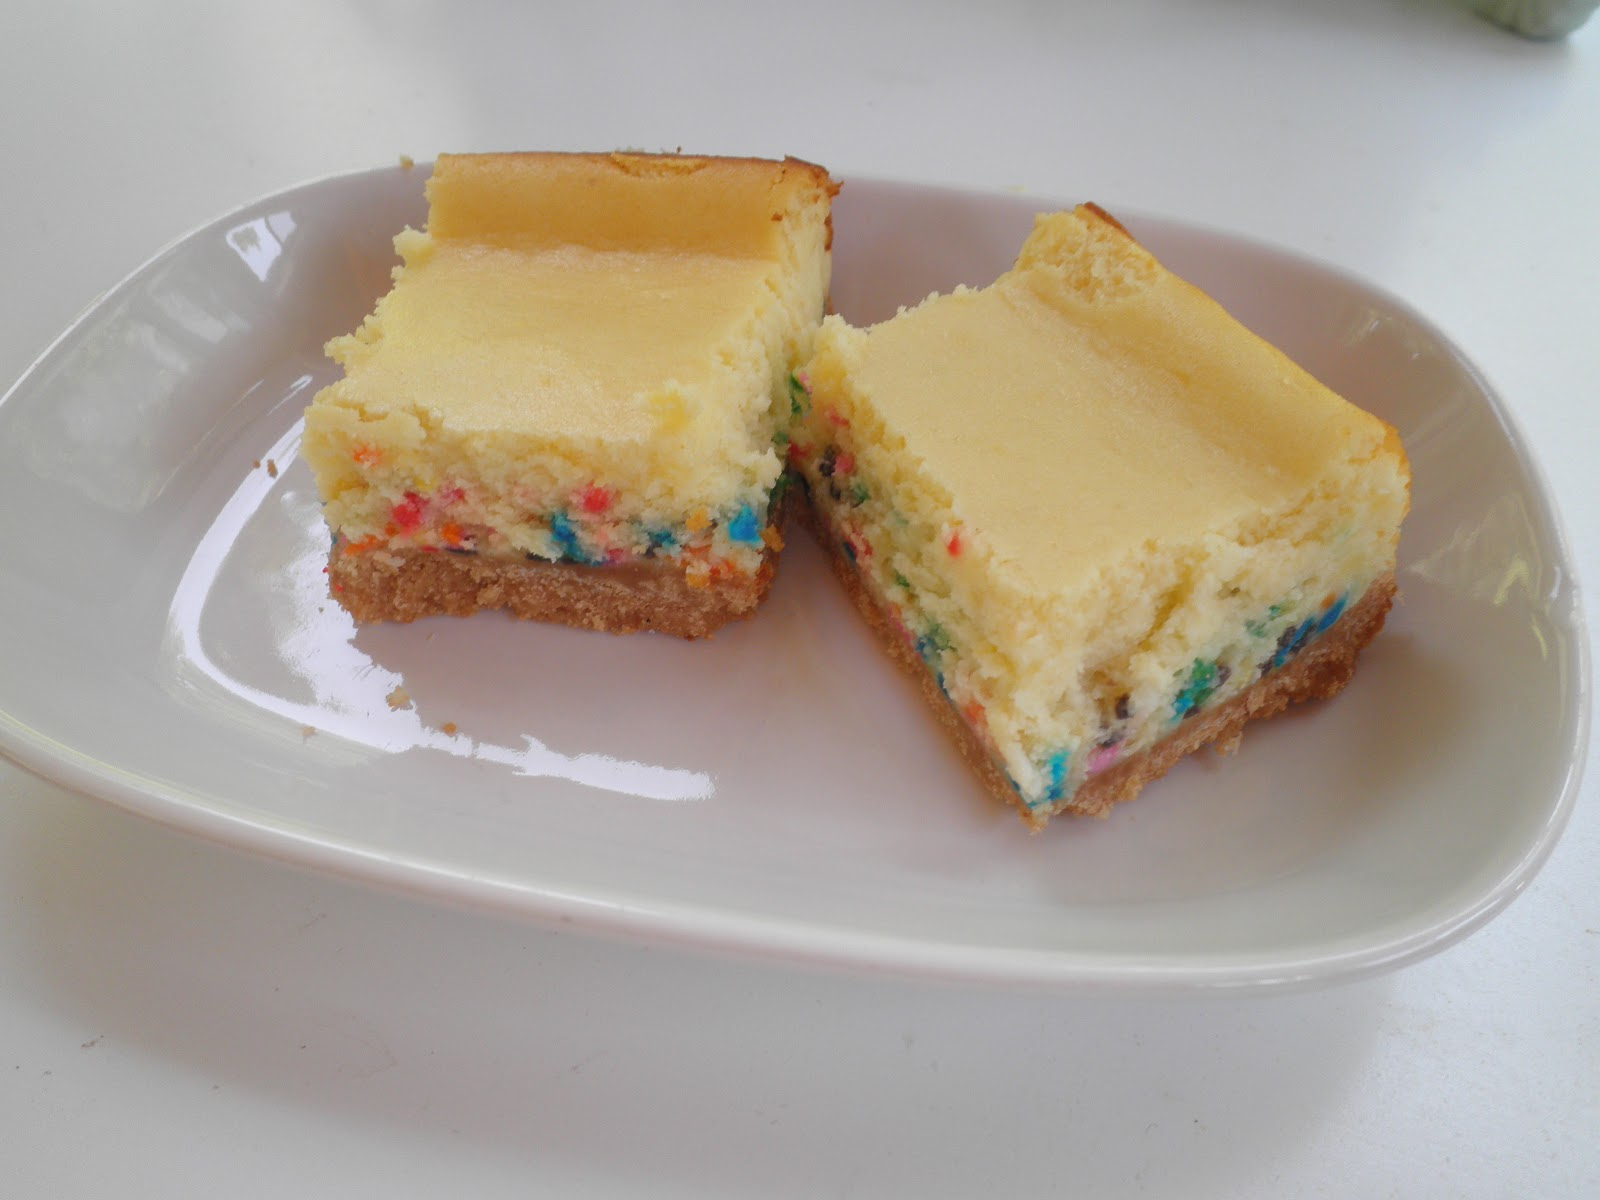 Birthday Cake Cheesecake Bars Image Inspiration of Cake and